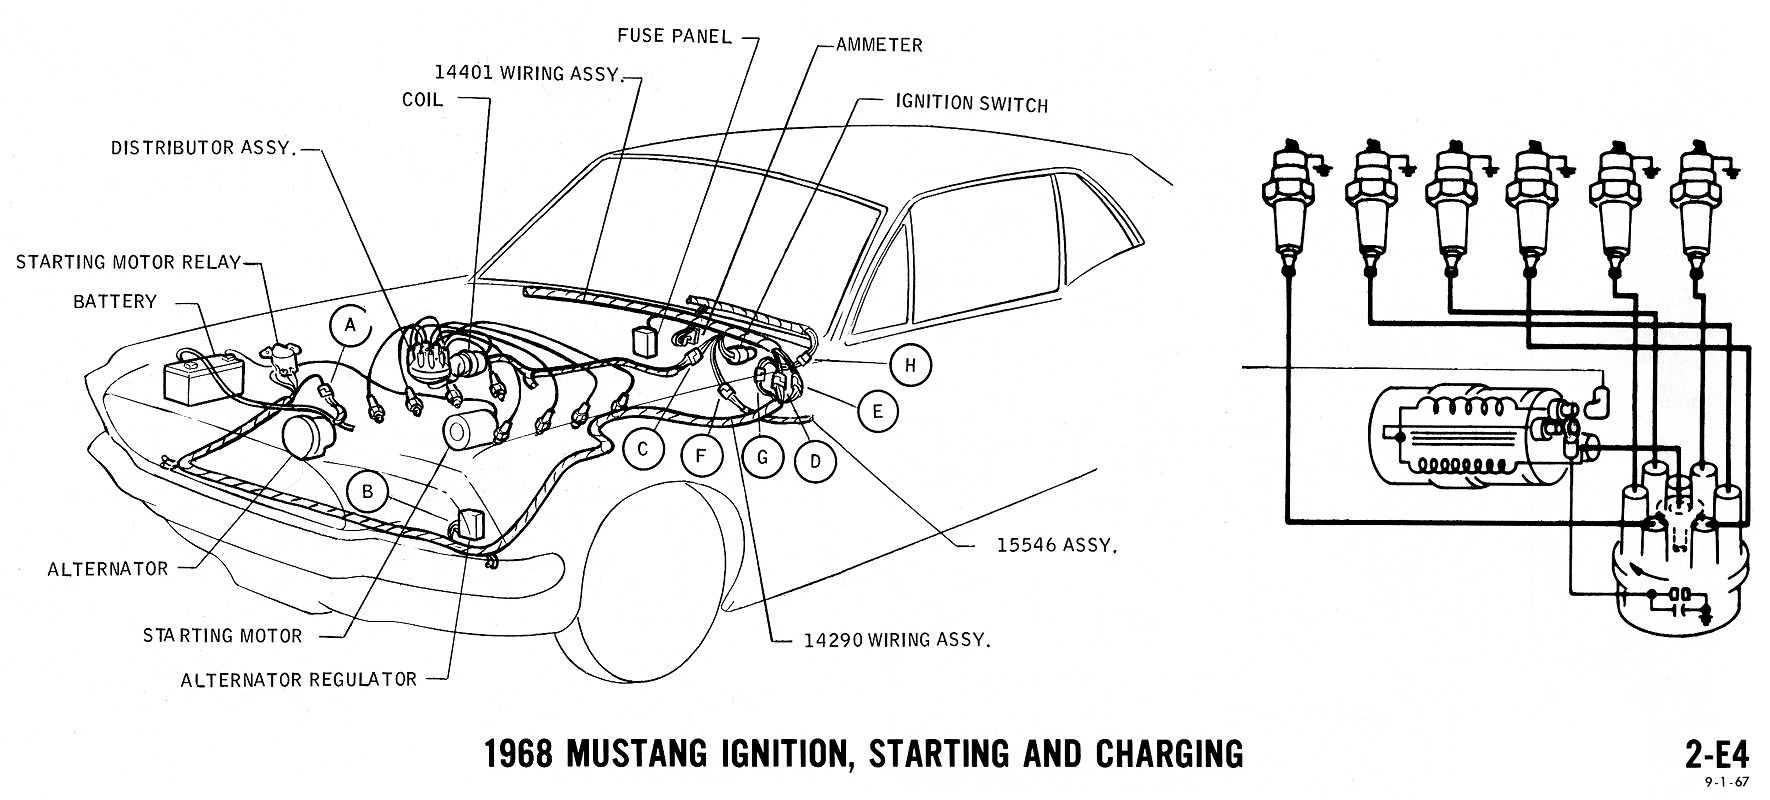 1968 Ford Mustang Ignition Wiring Diagram 1985 Harness Diagrams Evolving Software1968 2